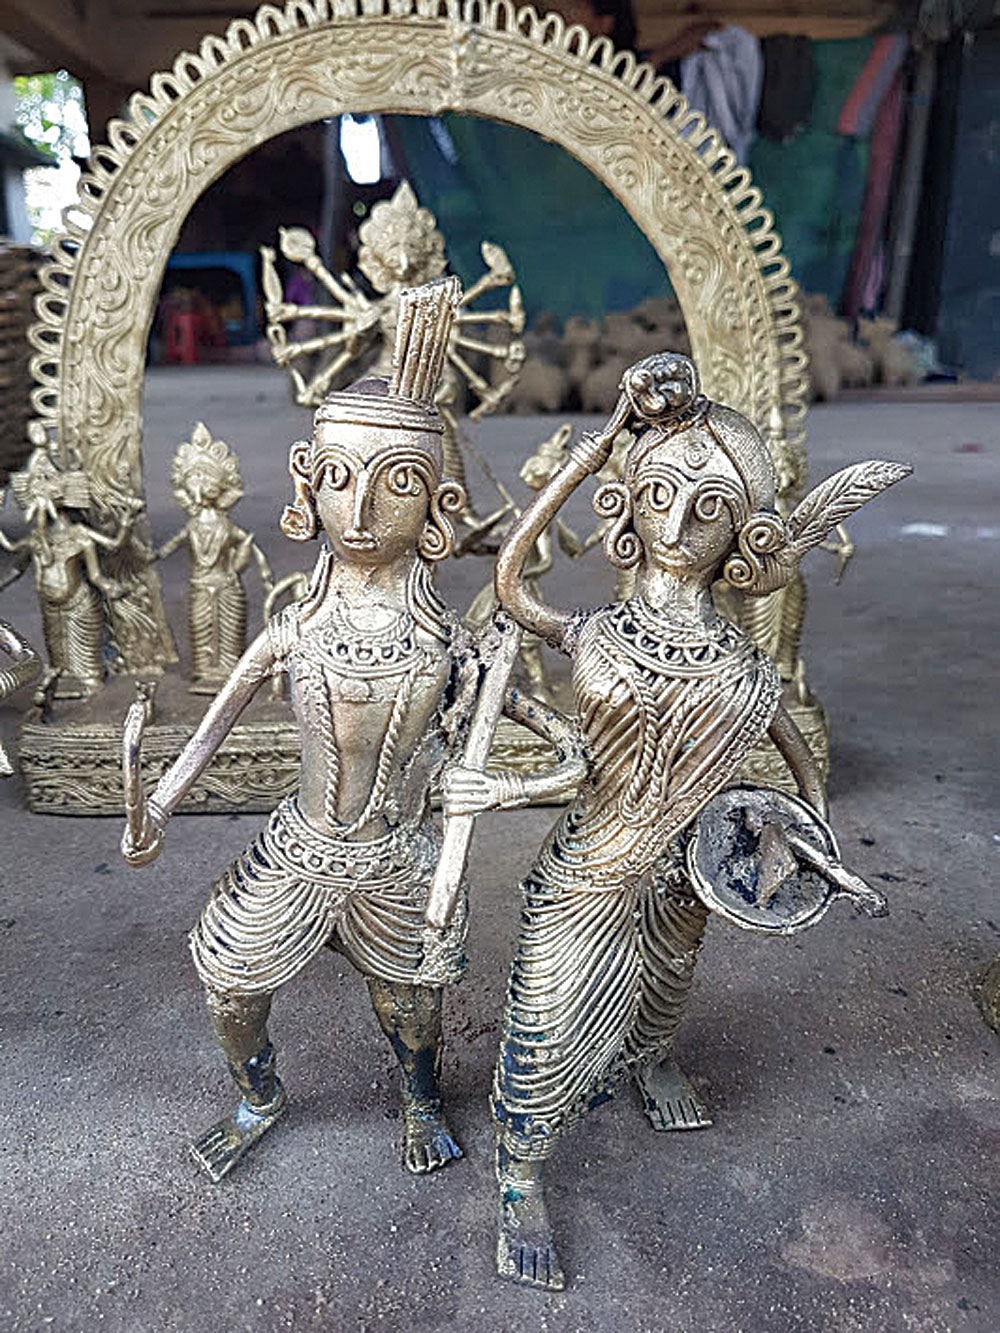 "Drive into Bikna, a dokra village, to watch artisans create the beautiful metallic figurines. ""We are about 75 families living here and dokra has been our profession for generations,"" said Subhankar Rana, one of the artisans. Prices are less than those in the city too"